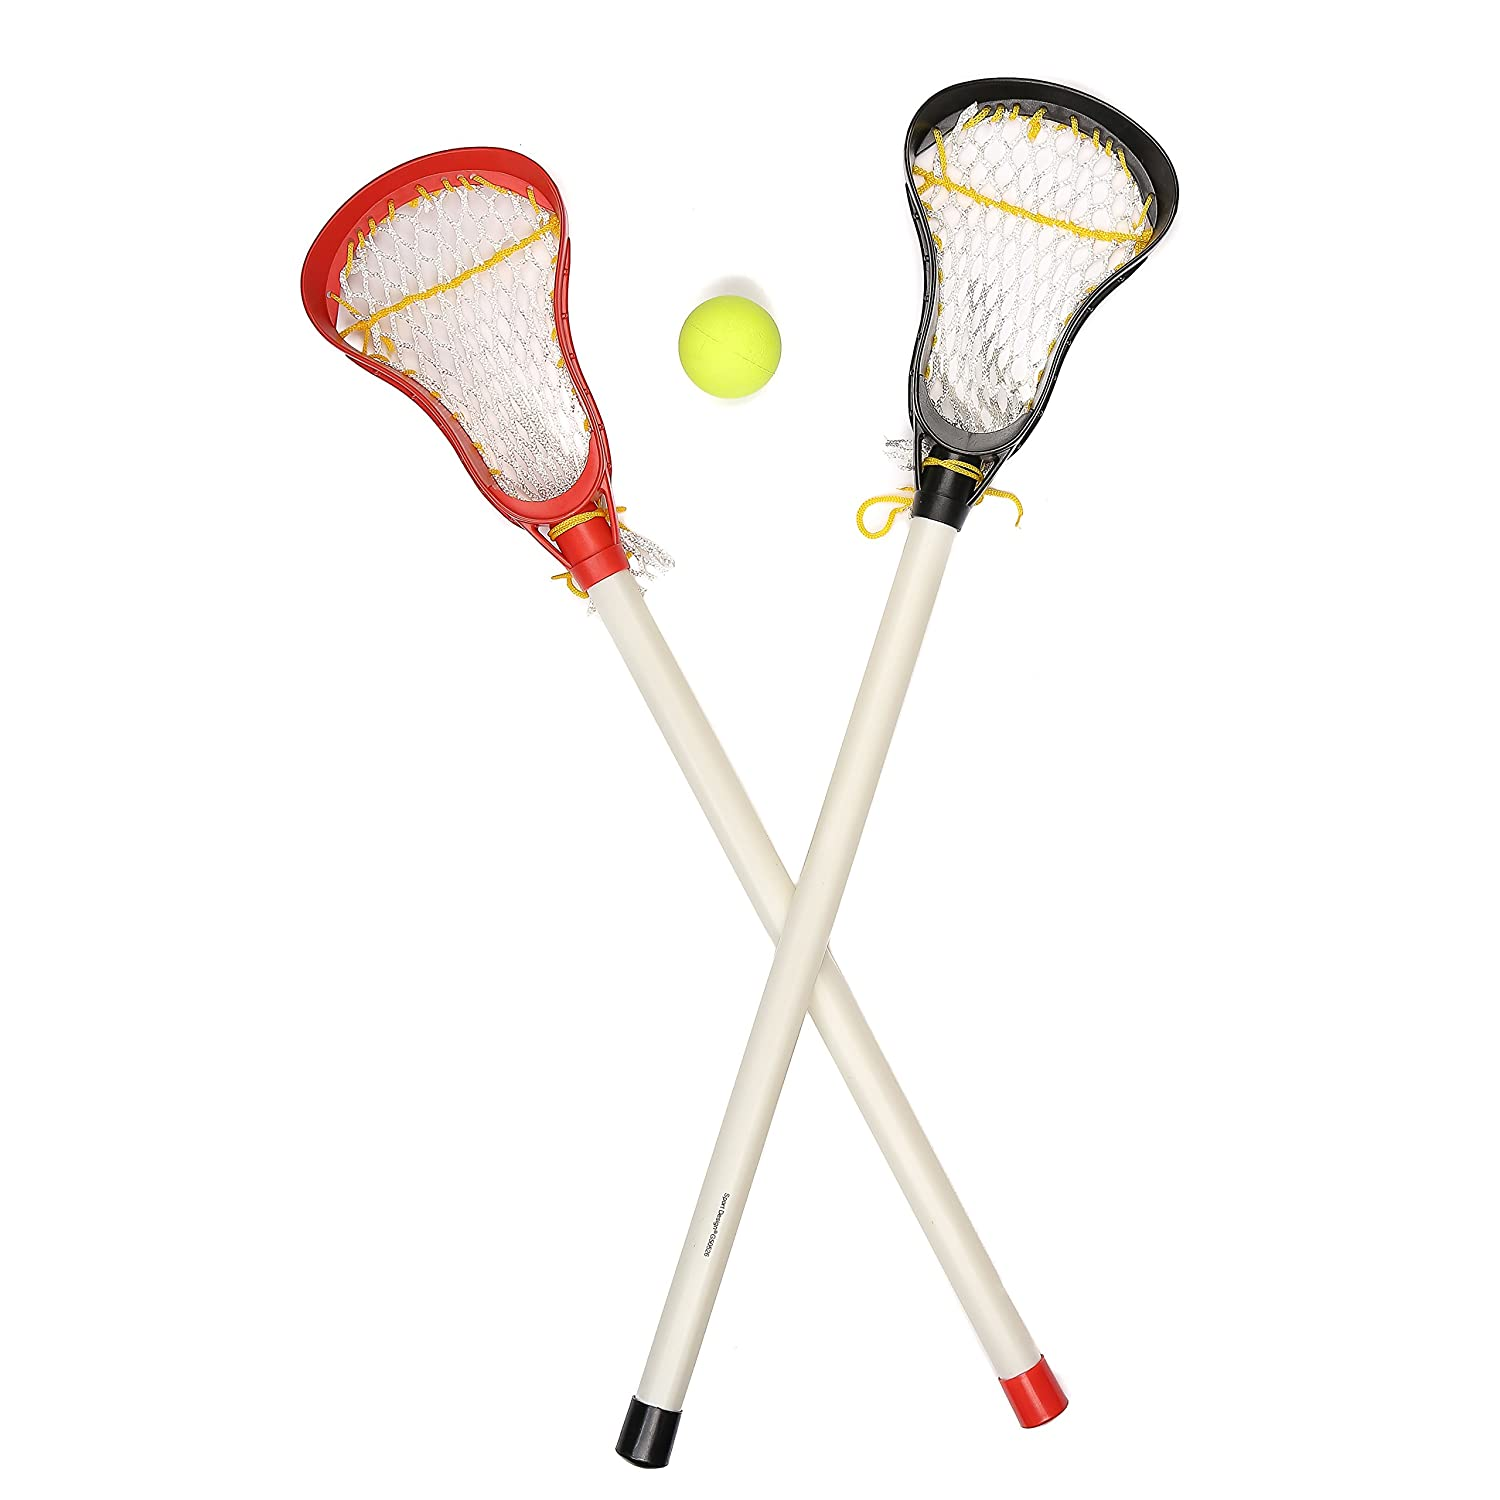 Kids Lacrosse Sticks - 2 Sticks (30 Inches) & 1 Ball - Soft Mesh Pockets, Durable Plastic Handles, & Large Head Design